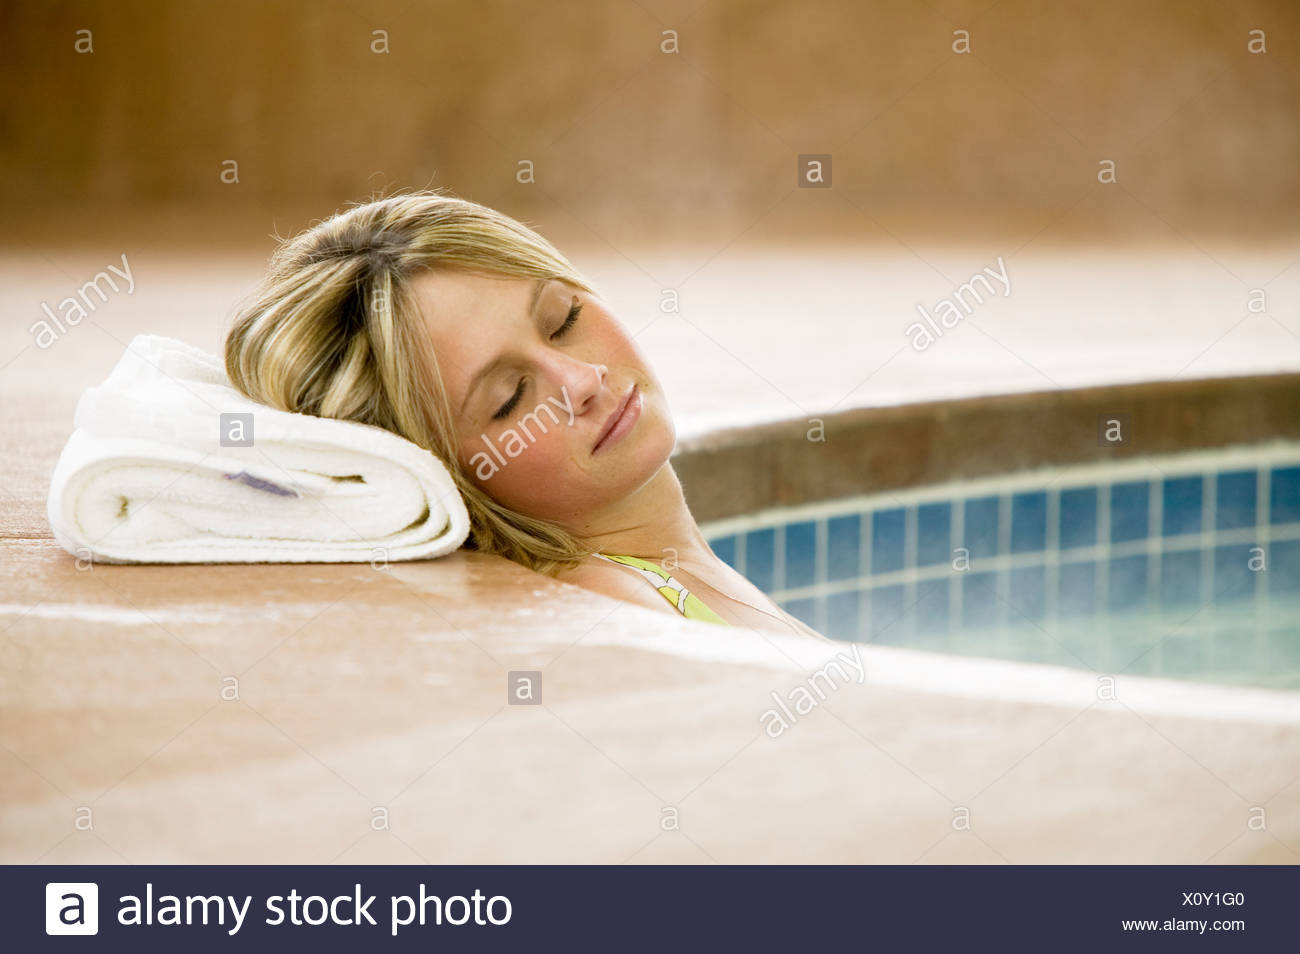 Woman relaxes in hot tub.  Port Alberni, Vancouver Island, British Columbia, Canada. - Stock Image